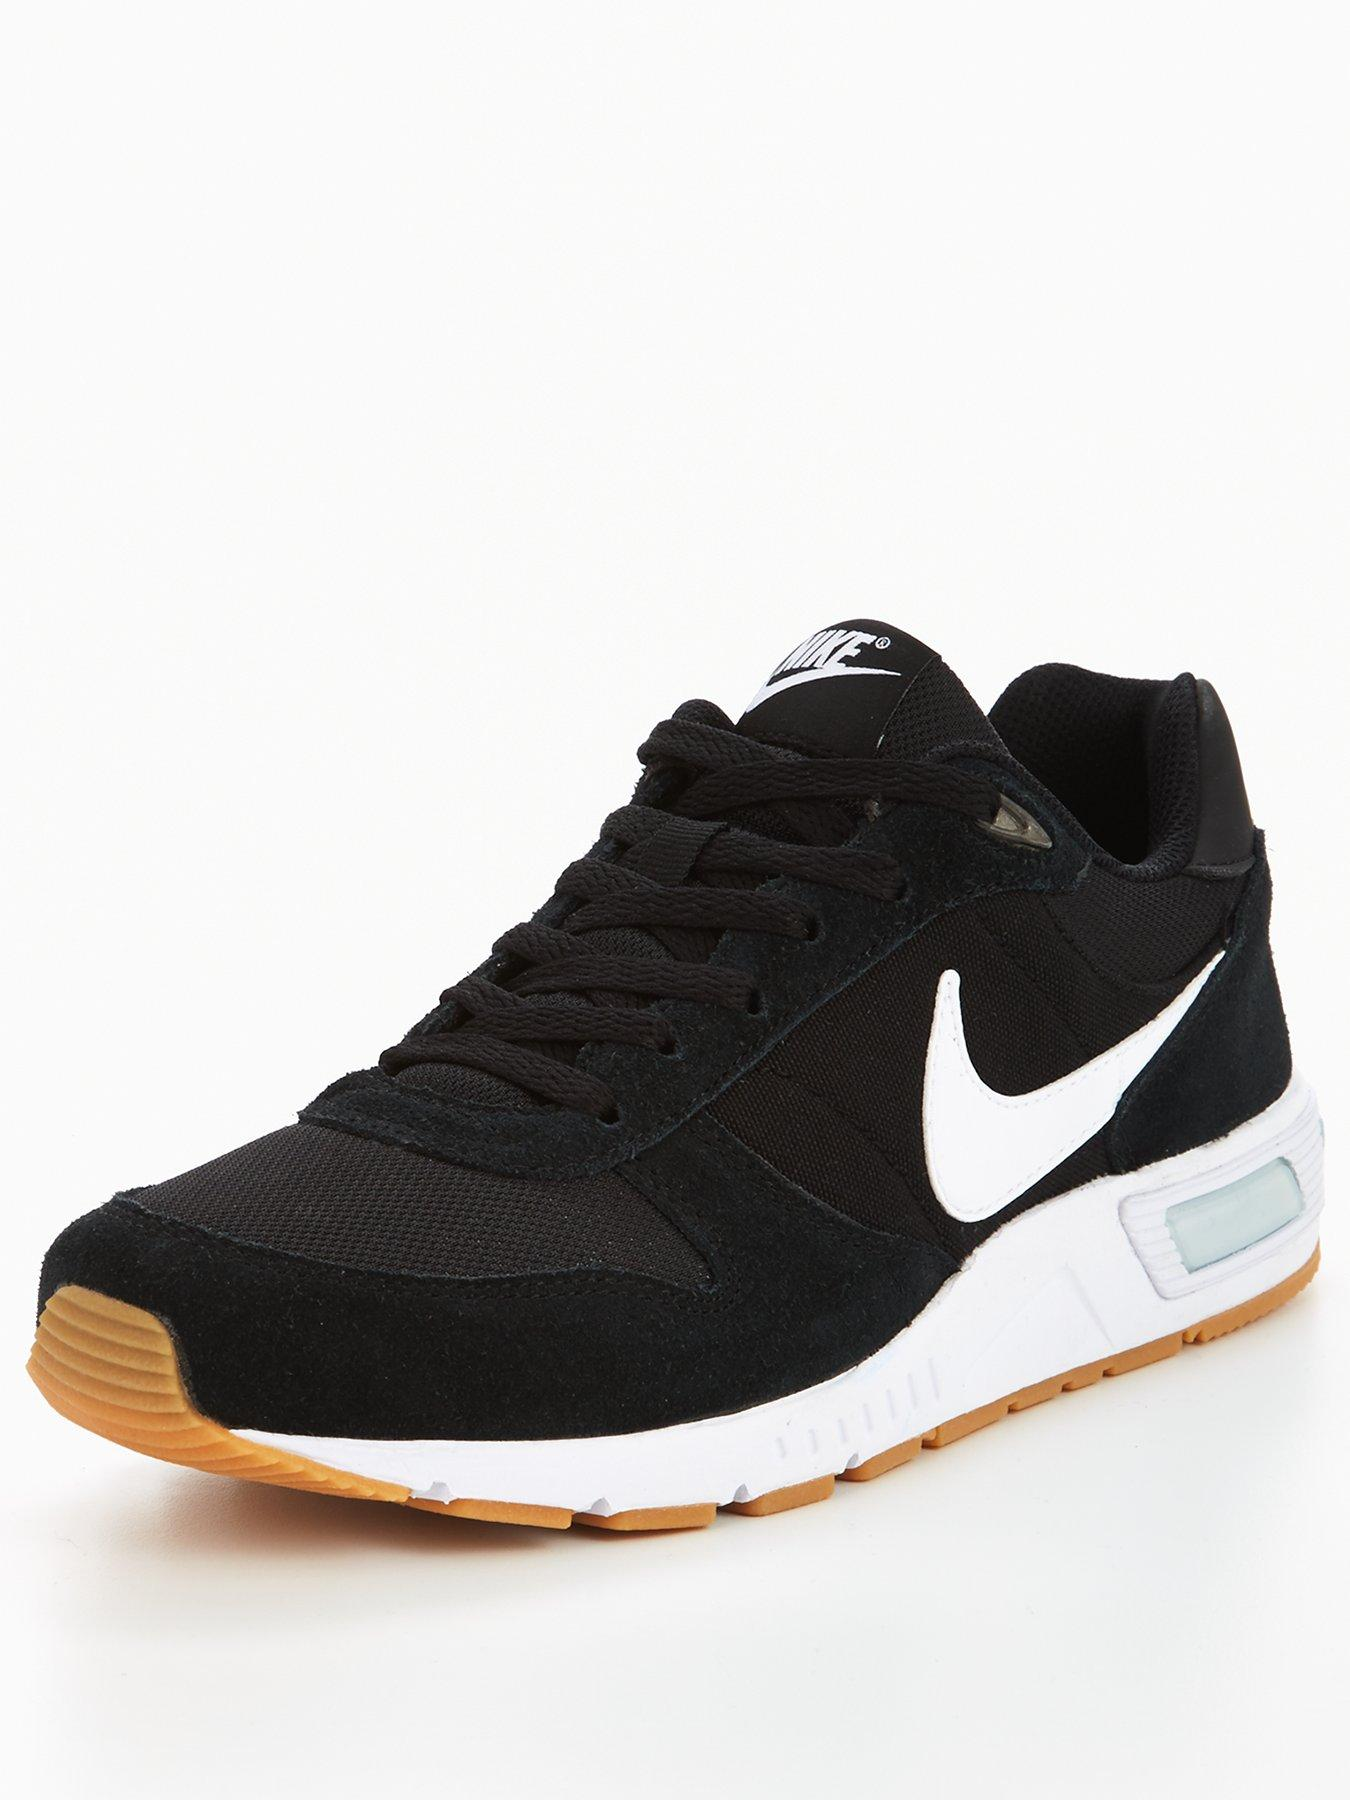 Nike Nightgazer 1600169917 Men's Shoes Nike Trainers